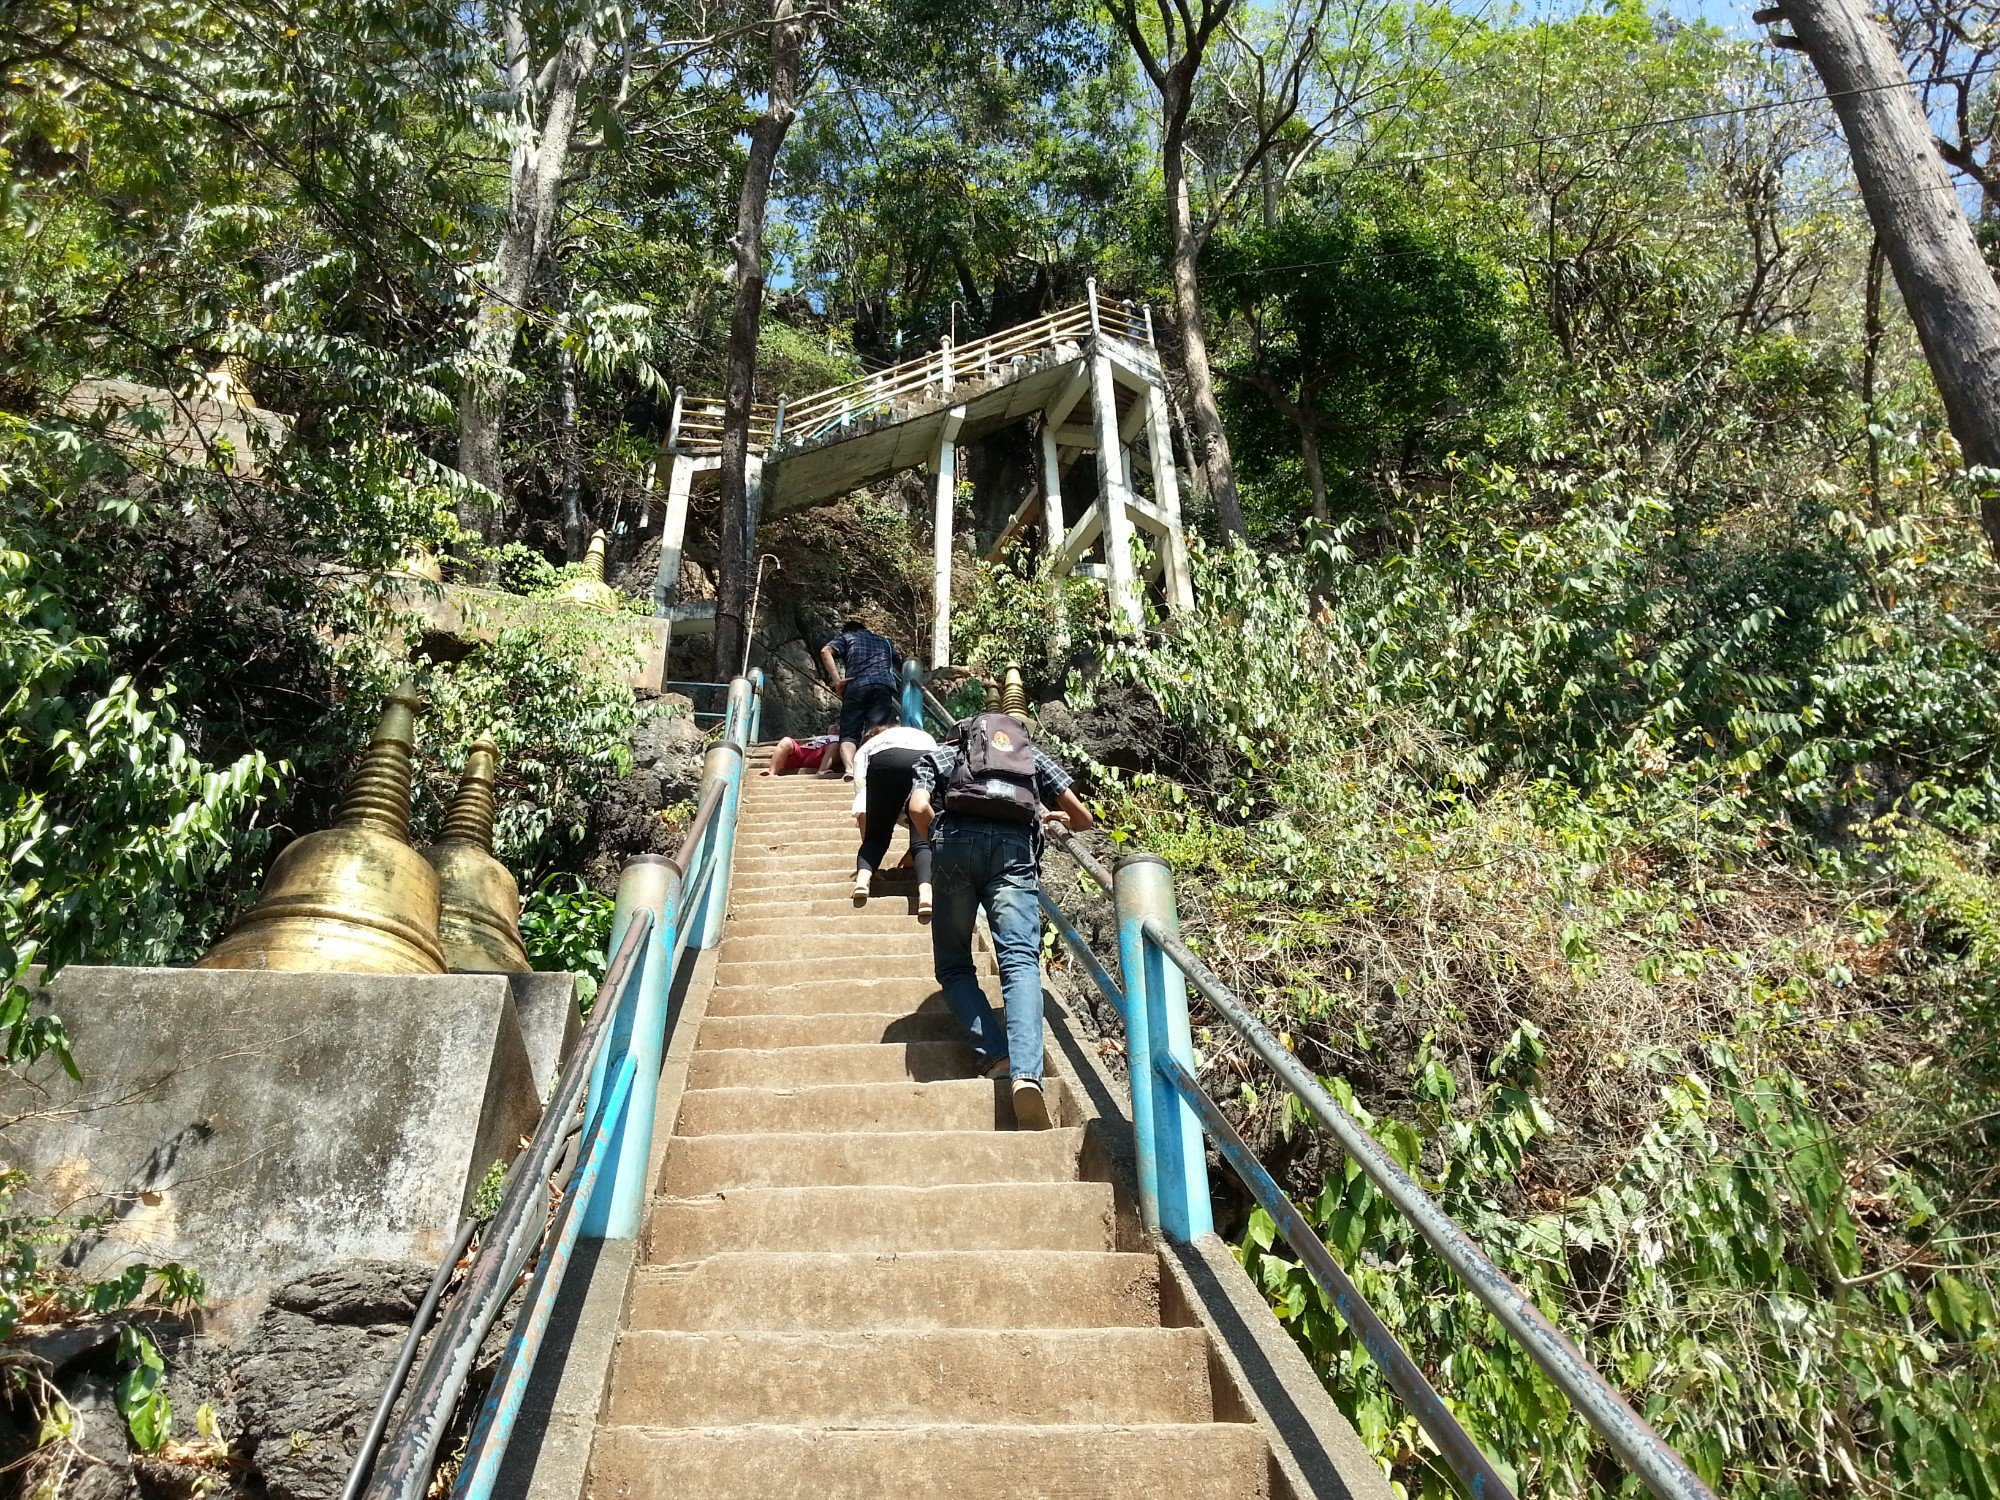 Stairs up the mountain at Wat Tham Suea